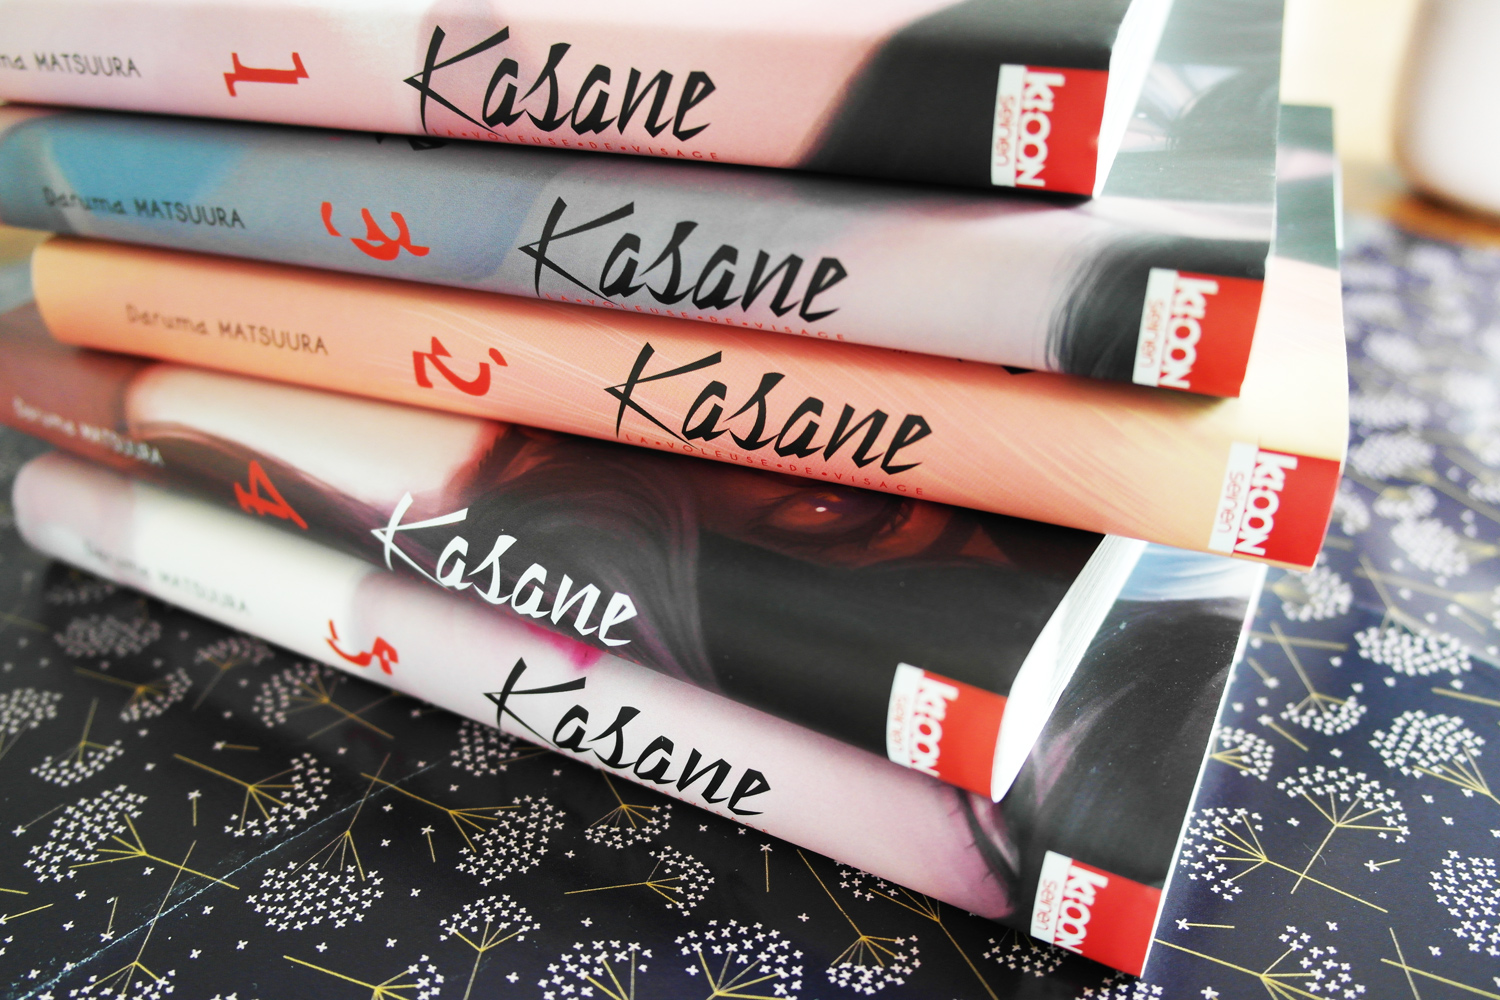 la-coutch-blog-lifestyle-kasane-manga-coup-de-coeur-kioon5